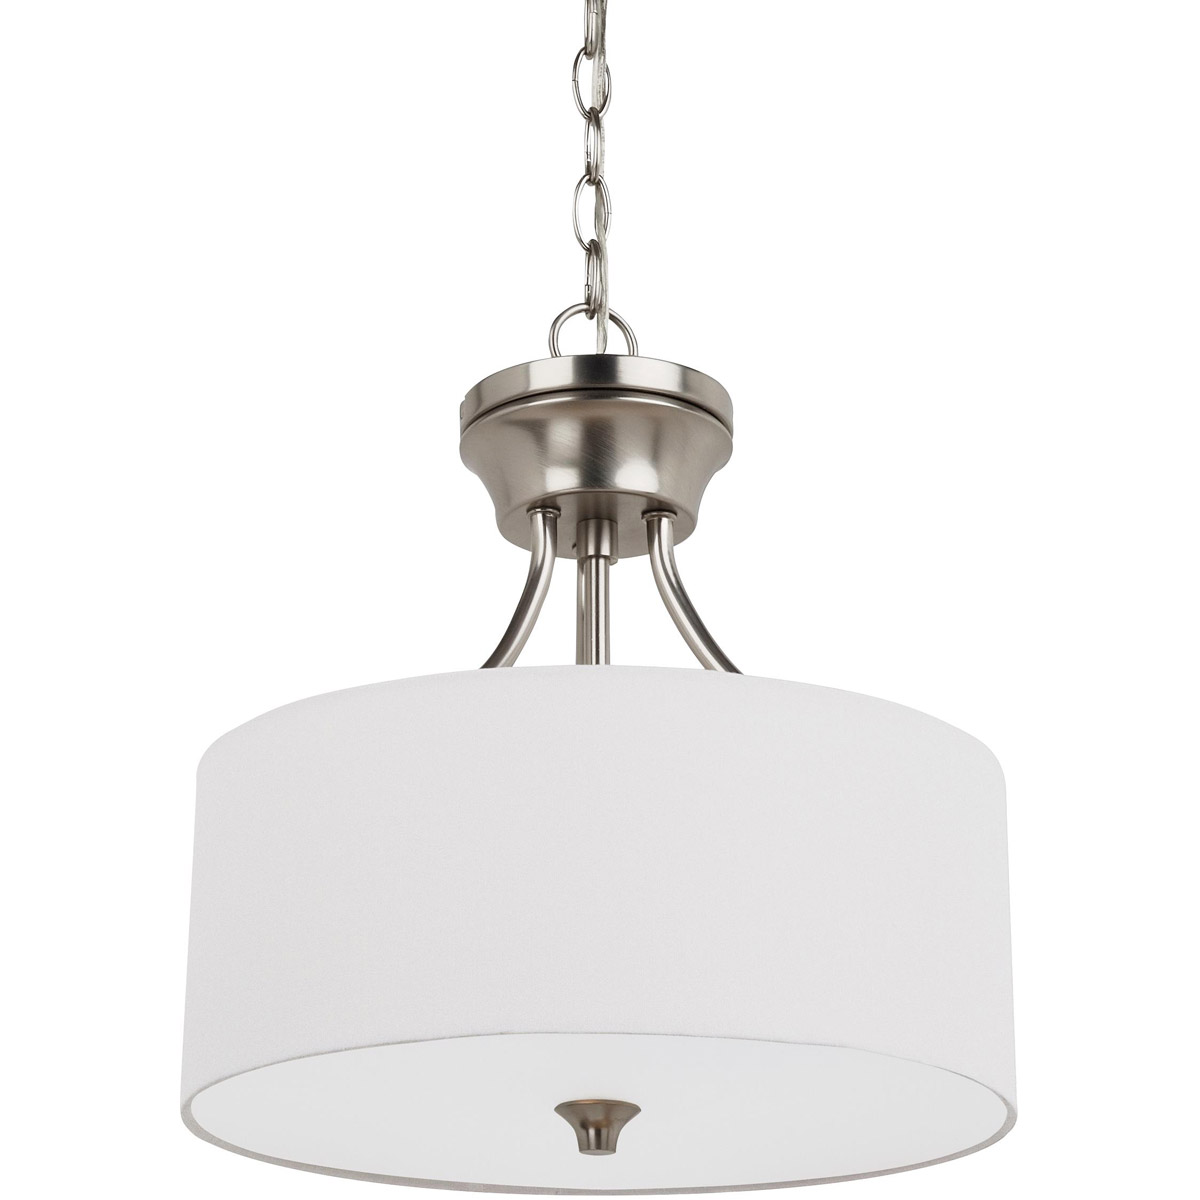 Sea Gull 77952-962 Stirling 2 Light 14 inch Brushed Nickel Semi-Flush Mount Ceiling Light in White Linen Fabric, Standard photo